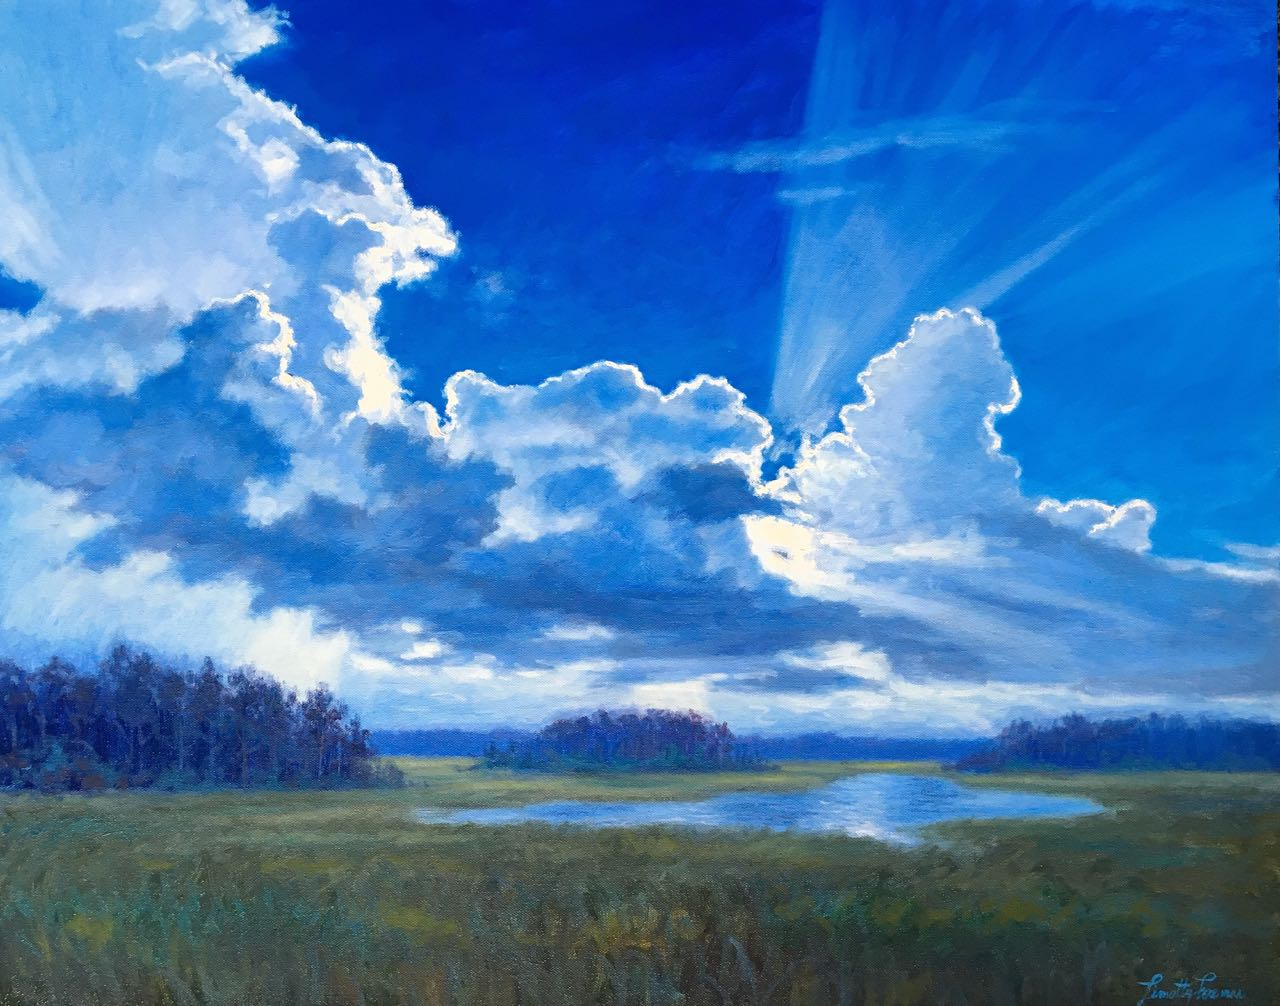 Cerulean Sky and Rays of Sunlight Shining Through